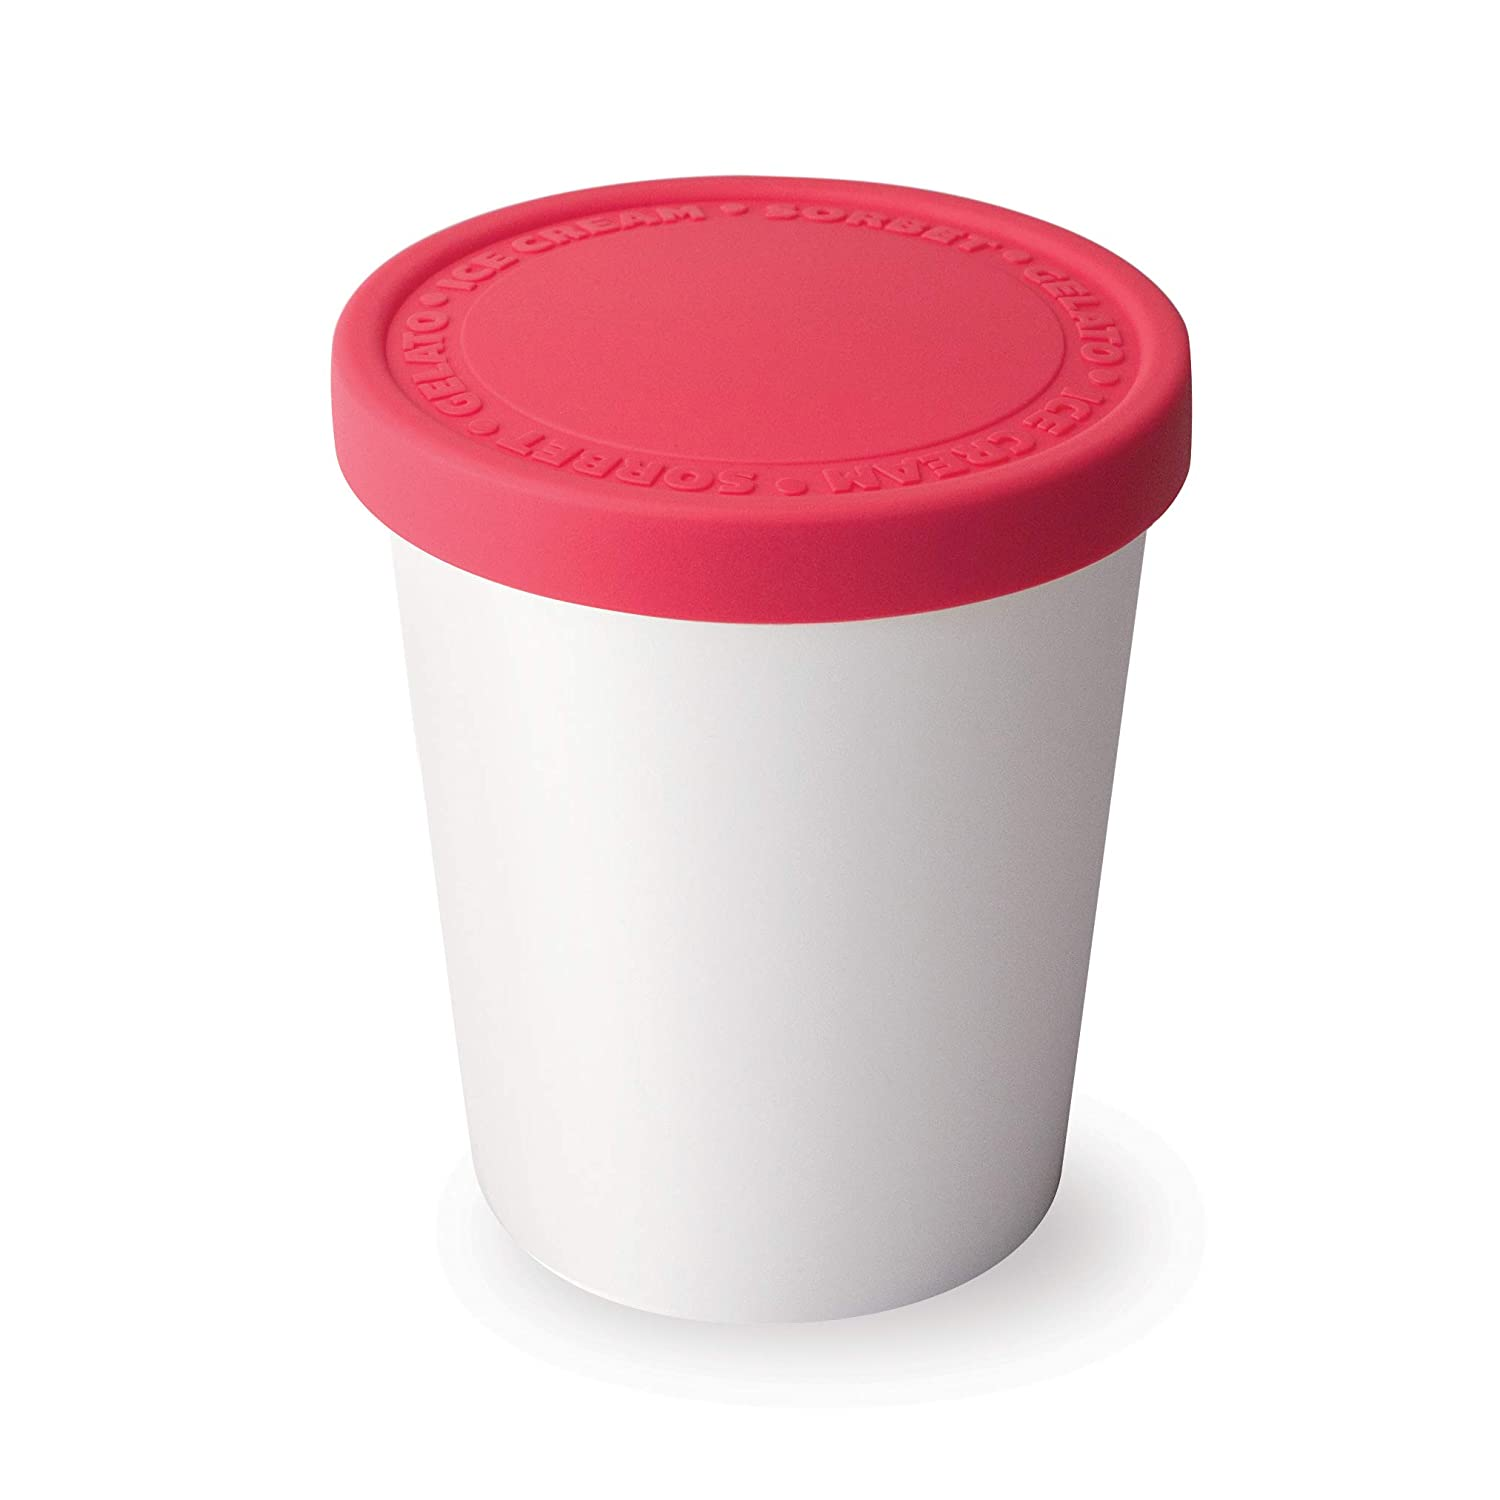 Tovolo Tight-Fitting, Stack-Friendly, Sweet Treat Ice Cream Tub - Raspberry